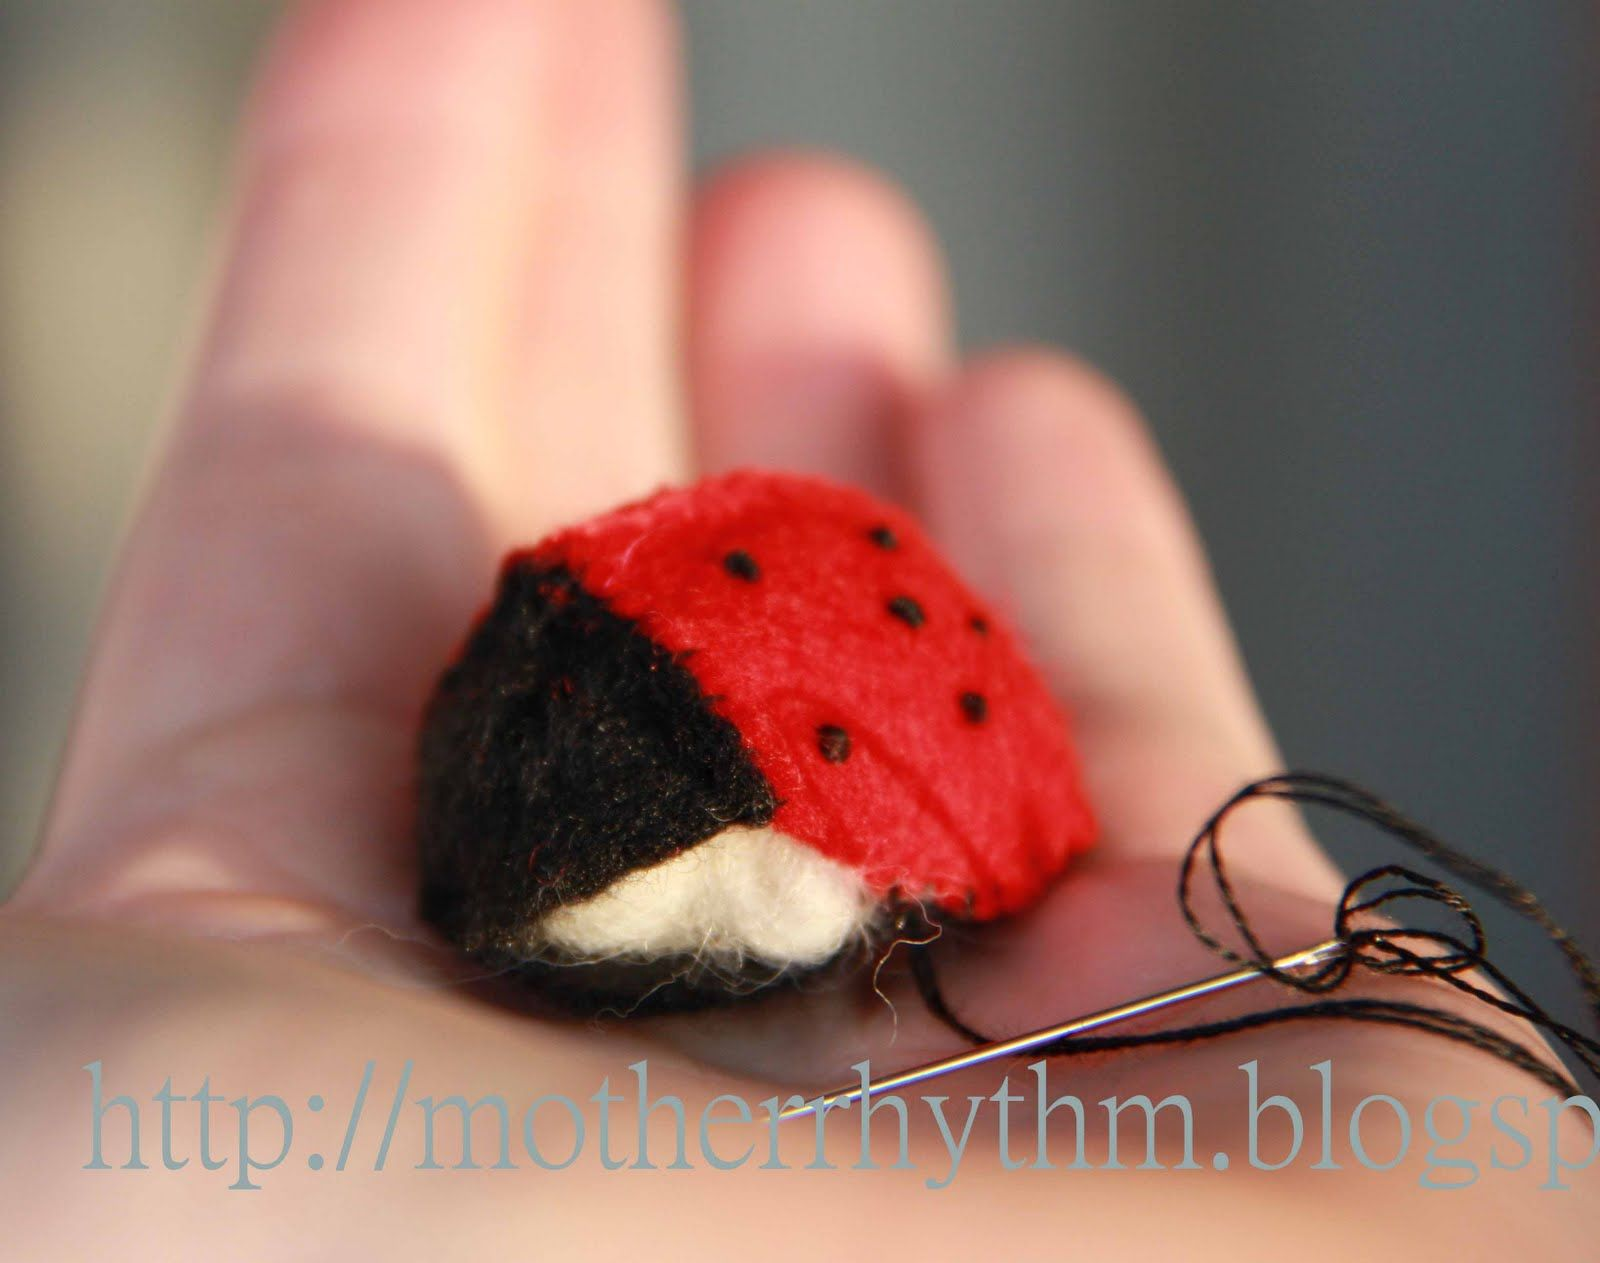 Red Ladybird Insect Ornament Home Garden Decor Wall Hanging Art Craft 16cm